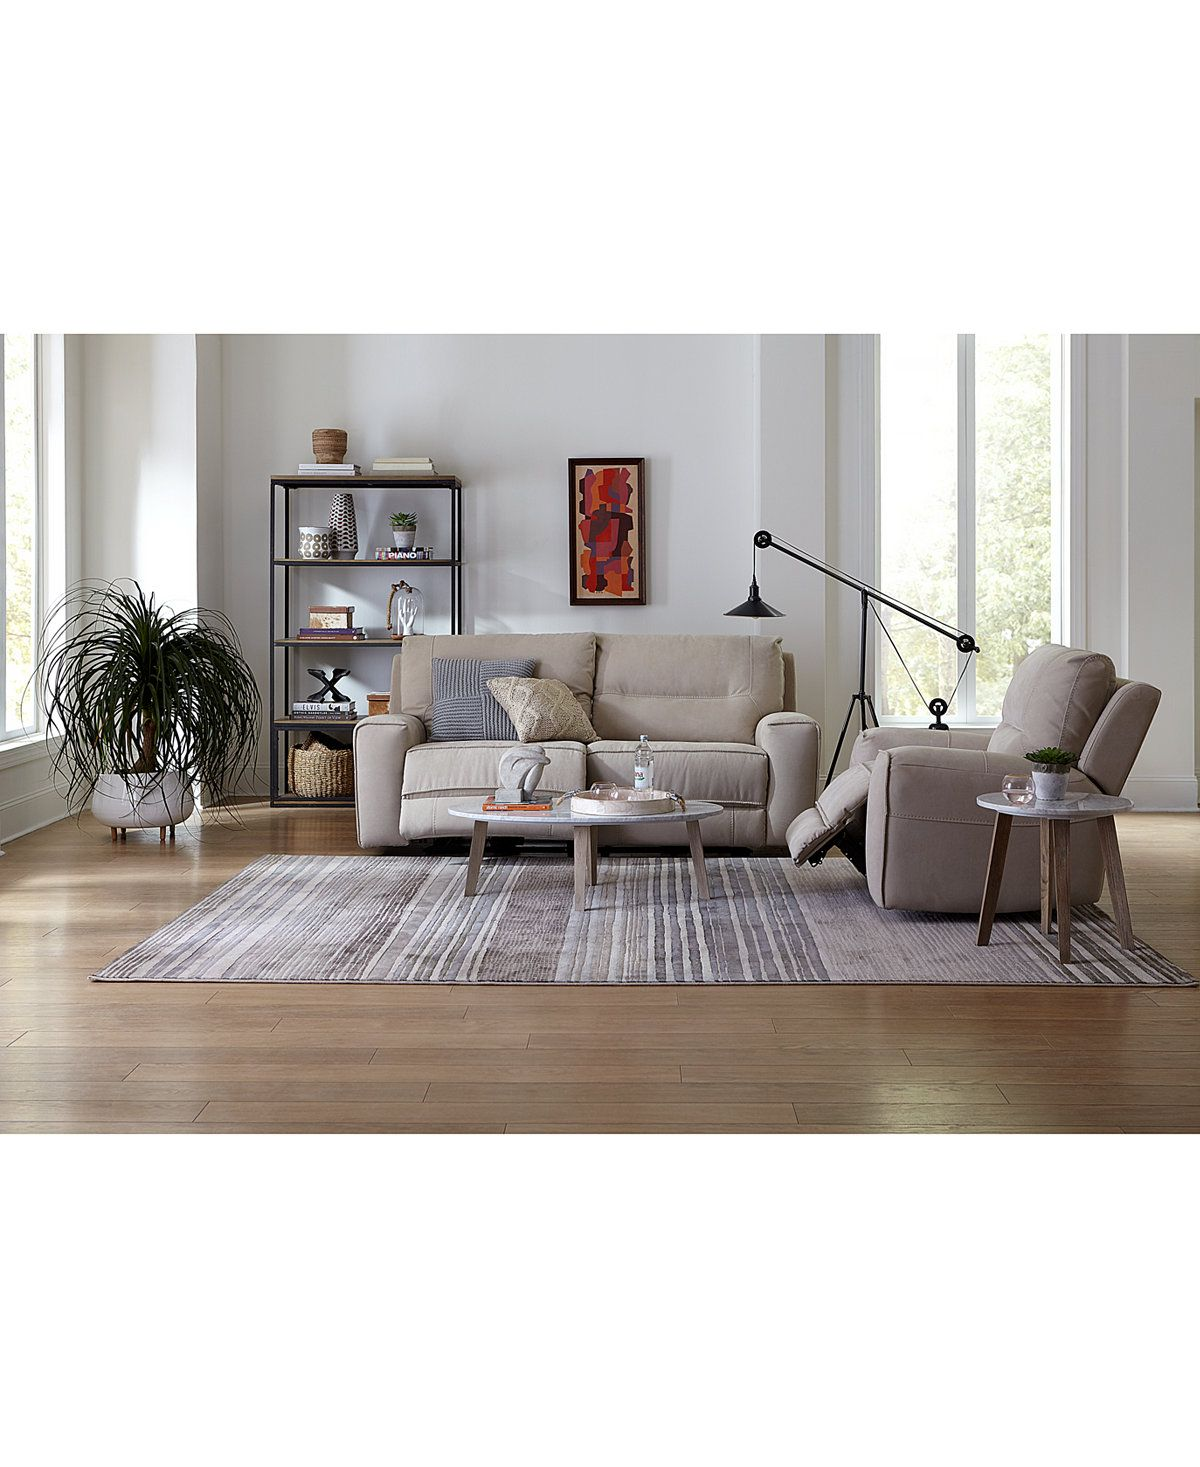 Surprising Genella Power Reclining Sofa Collection With Power Headrest Bralicious Painted Fabric Chair Ideas Braliciousco